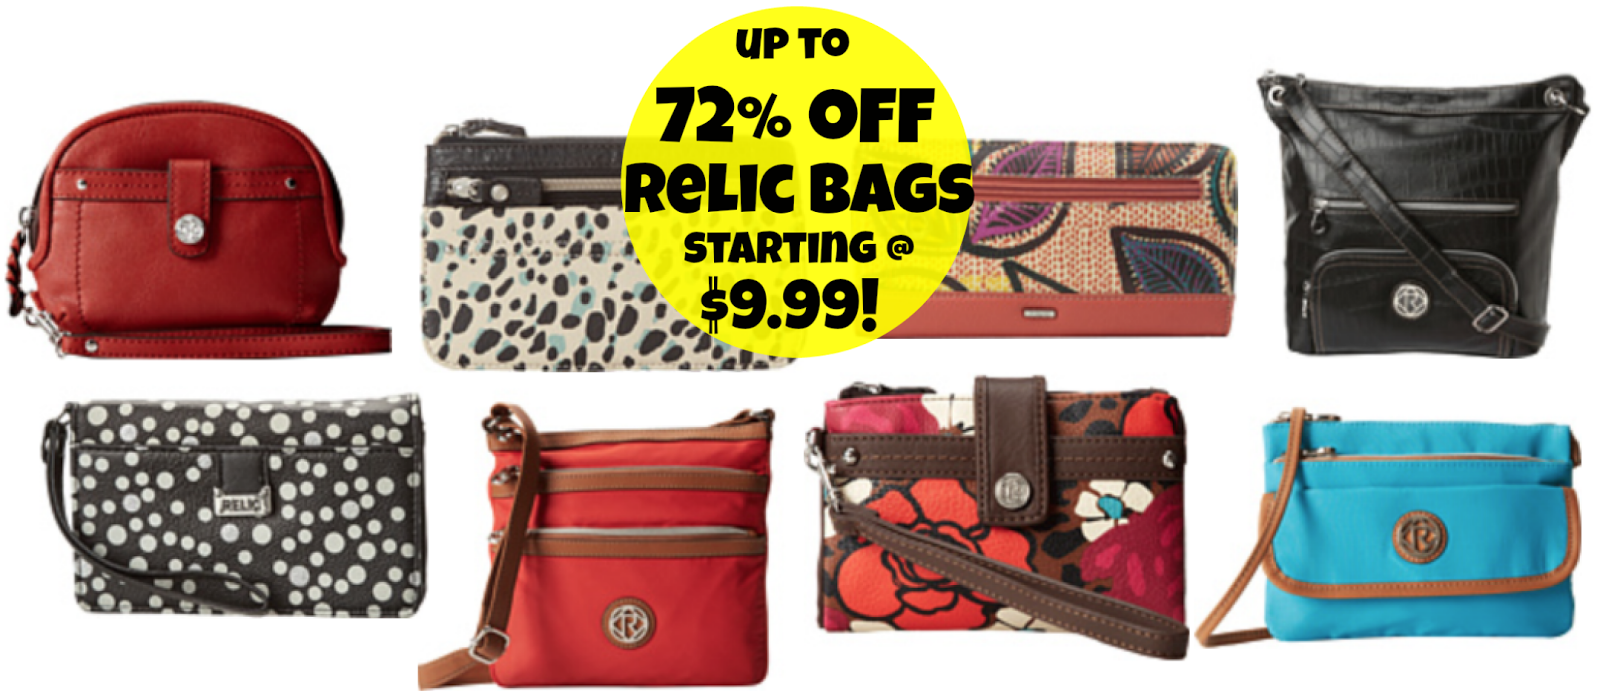 http://www.thebinderladies.com/2014/09/6pm-up-to-72-off-relic-wallets-bags.html#.VA4YJ0vdtbw